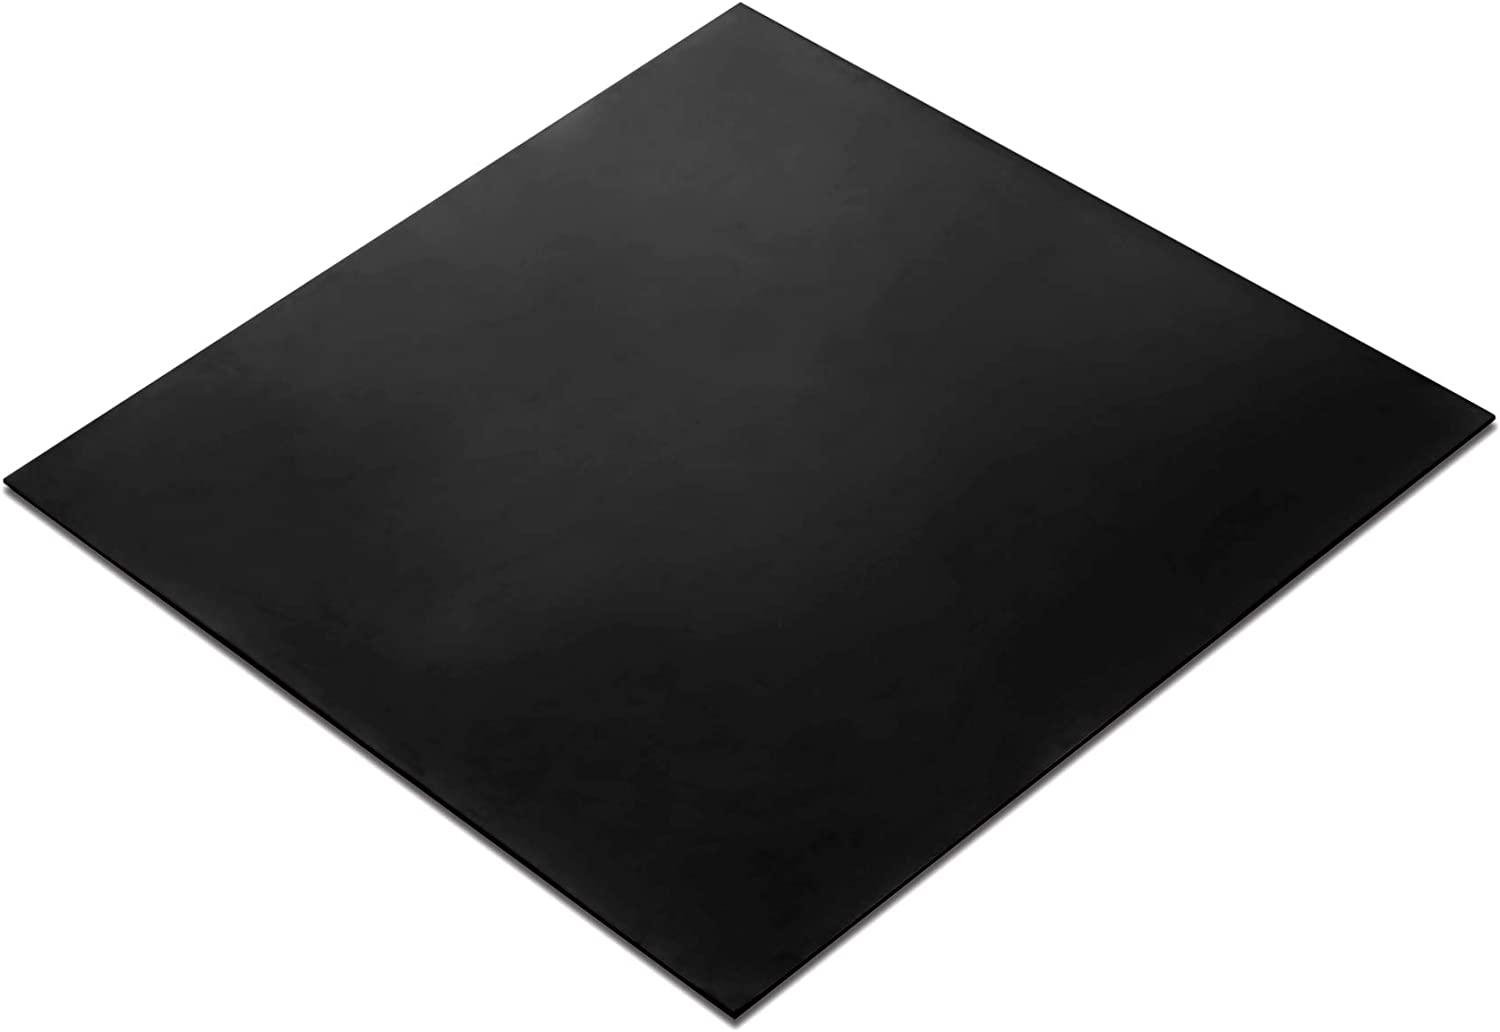 "Rubber Sheet, Heavy Duty, High Grade 60A, Neoprene Black, 12x12-Inch by 1/16"" (+/- 5%) for Plumbing, Gaskets DIY Material, Supports, Leveling, Sealing, Bumpers, Protection, Abrasion, Flooring"